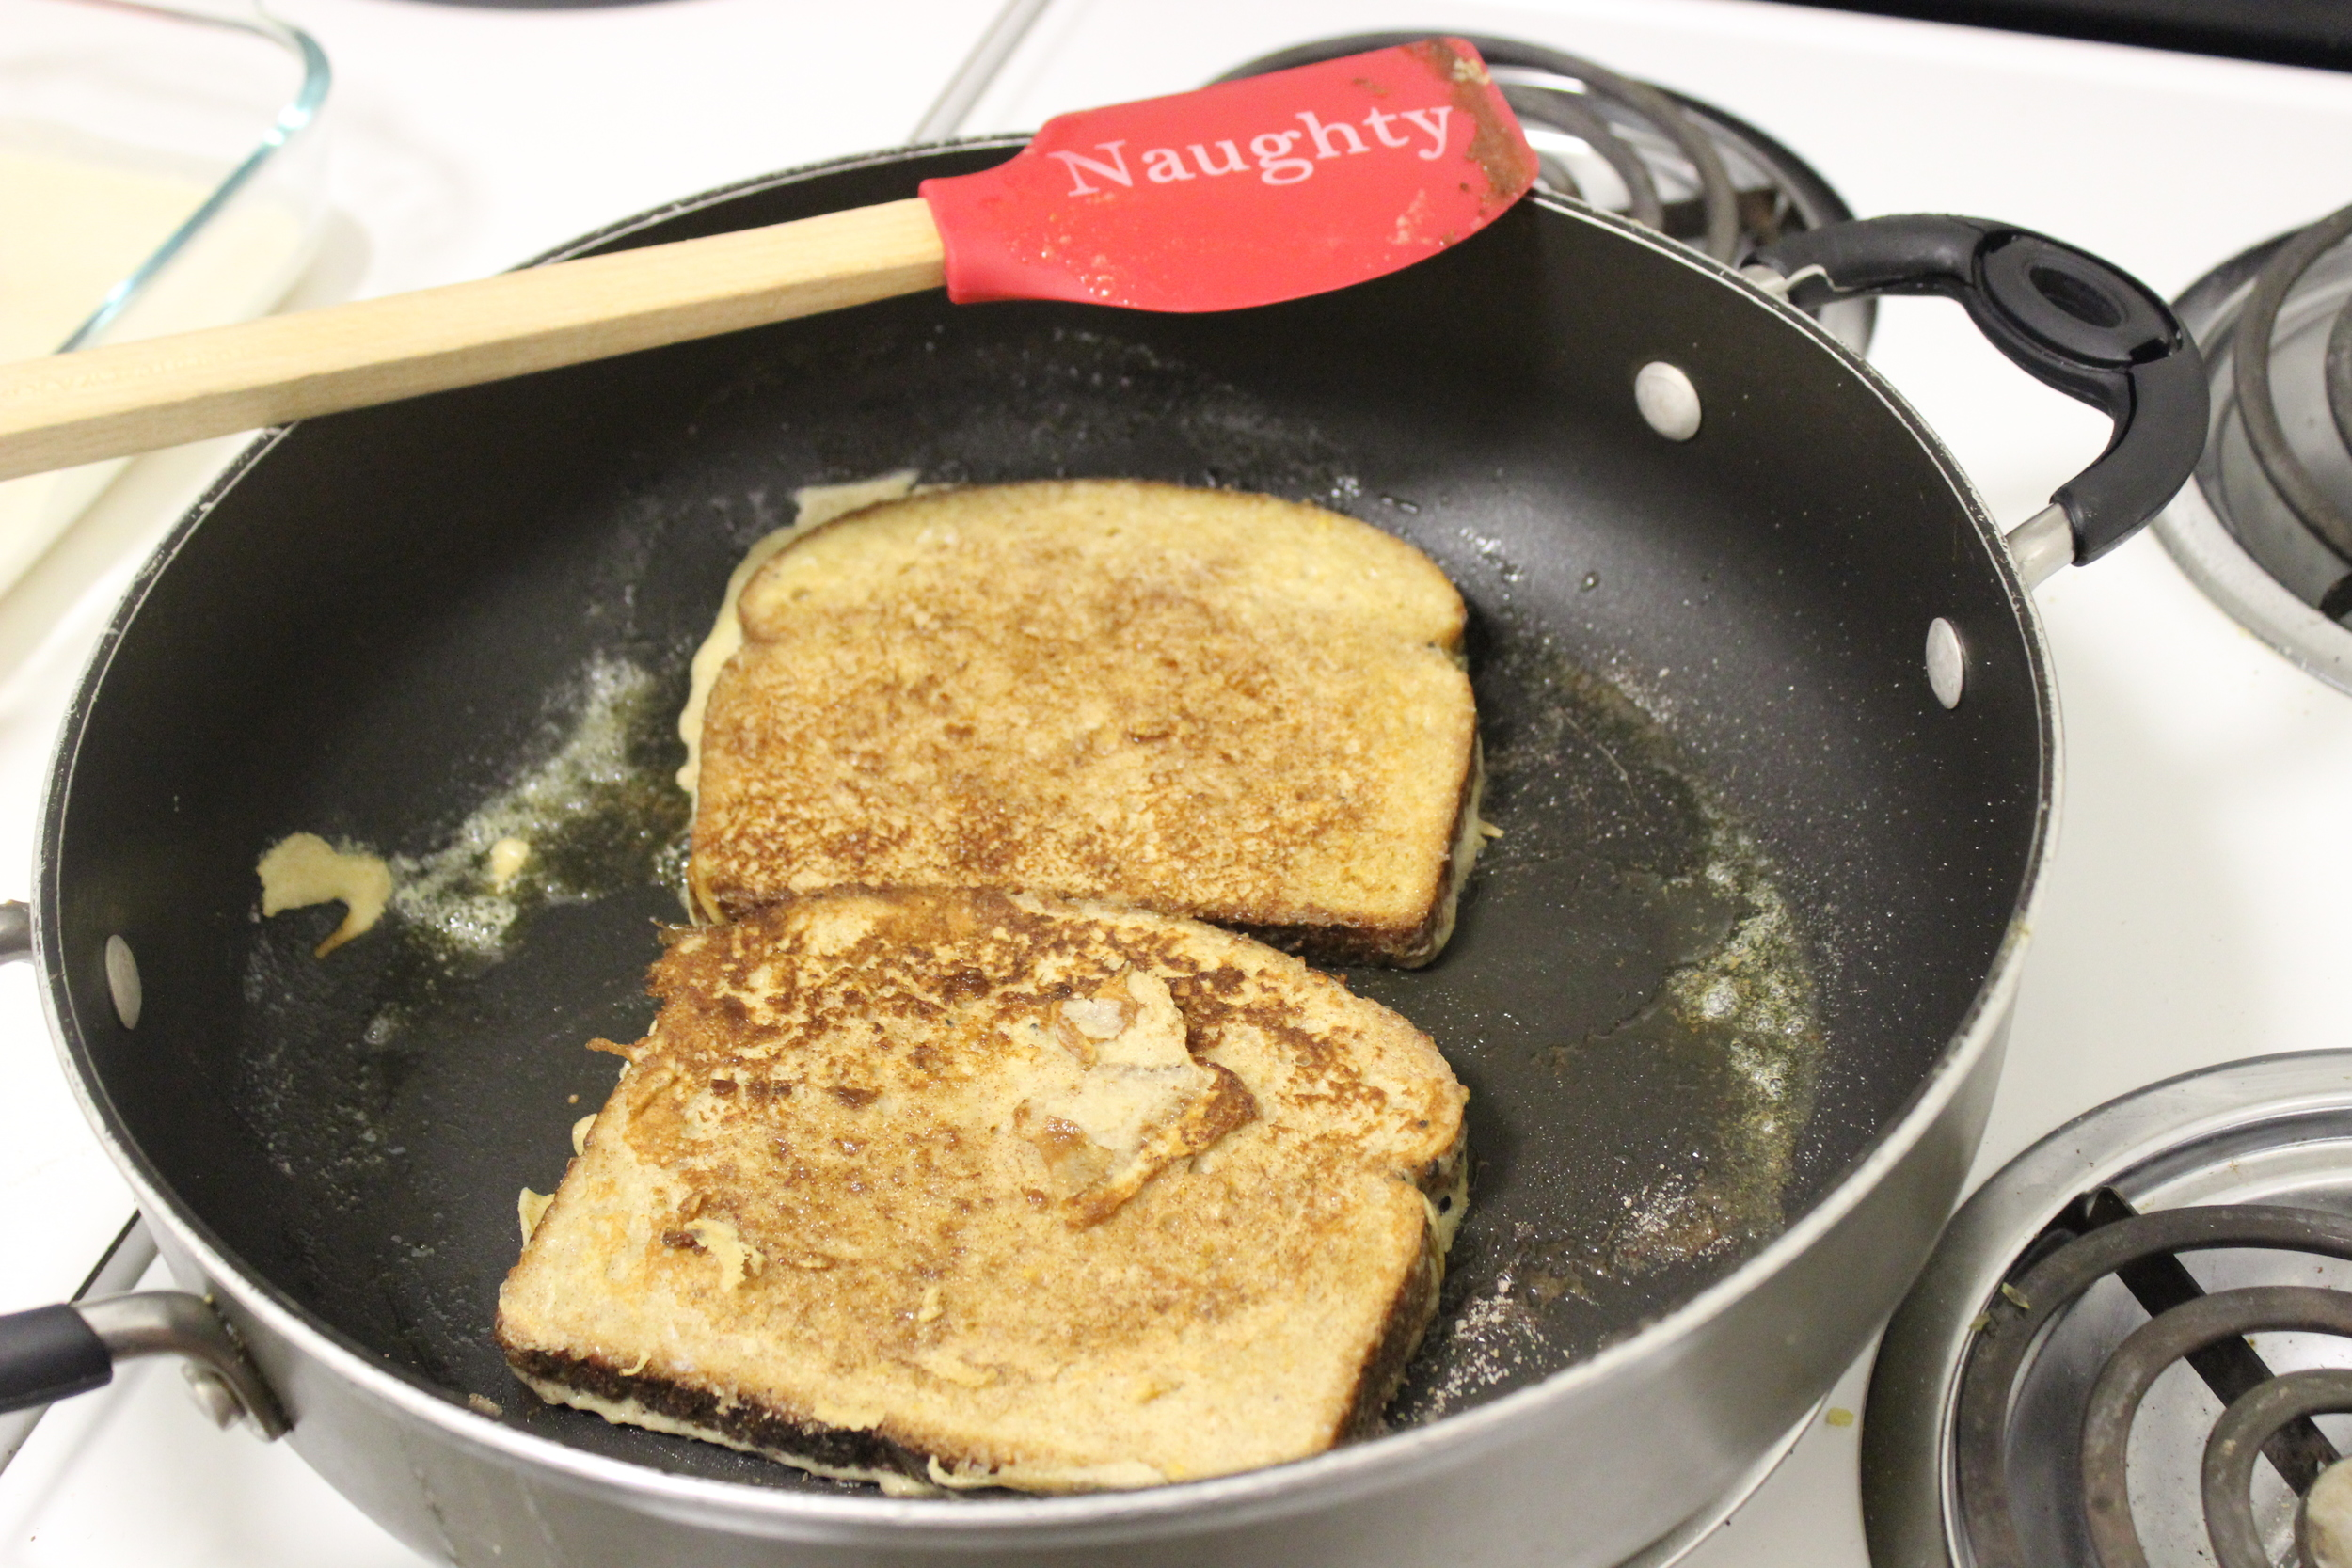 The spatula makes the French Toast taste better